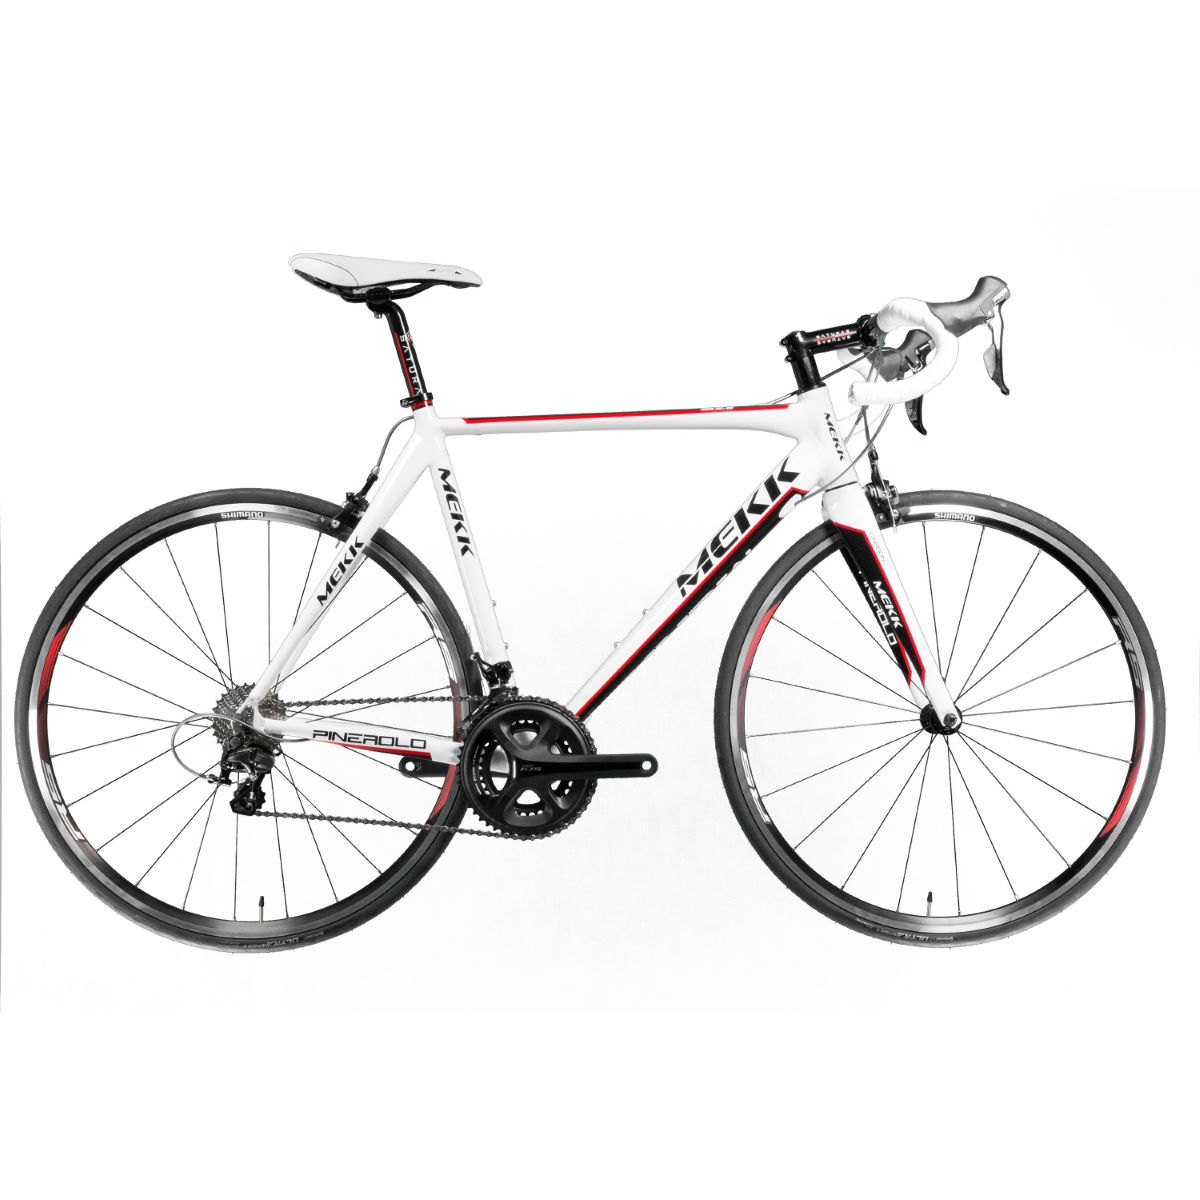 Mekk Pinerolo AL 2.6 (105 - 2015) - 54cm White/Black/Red | Road Bikes